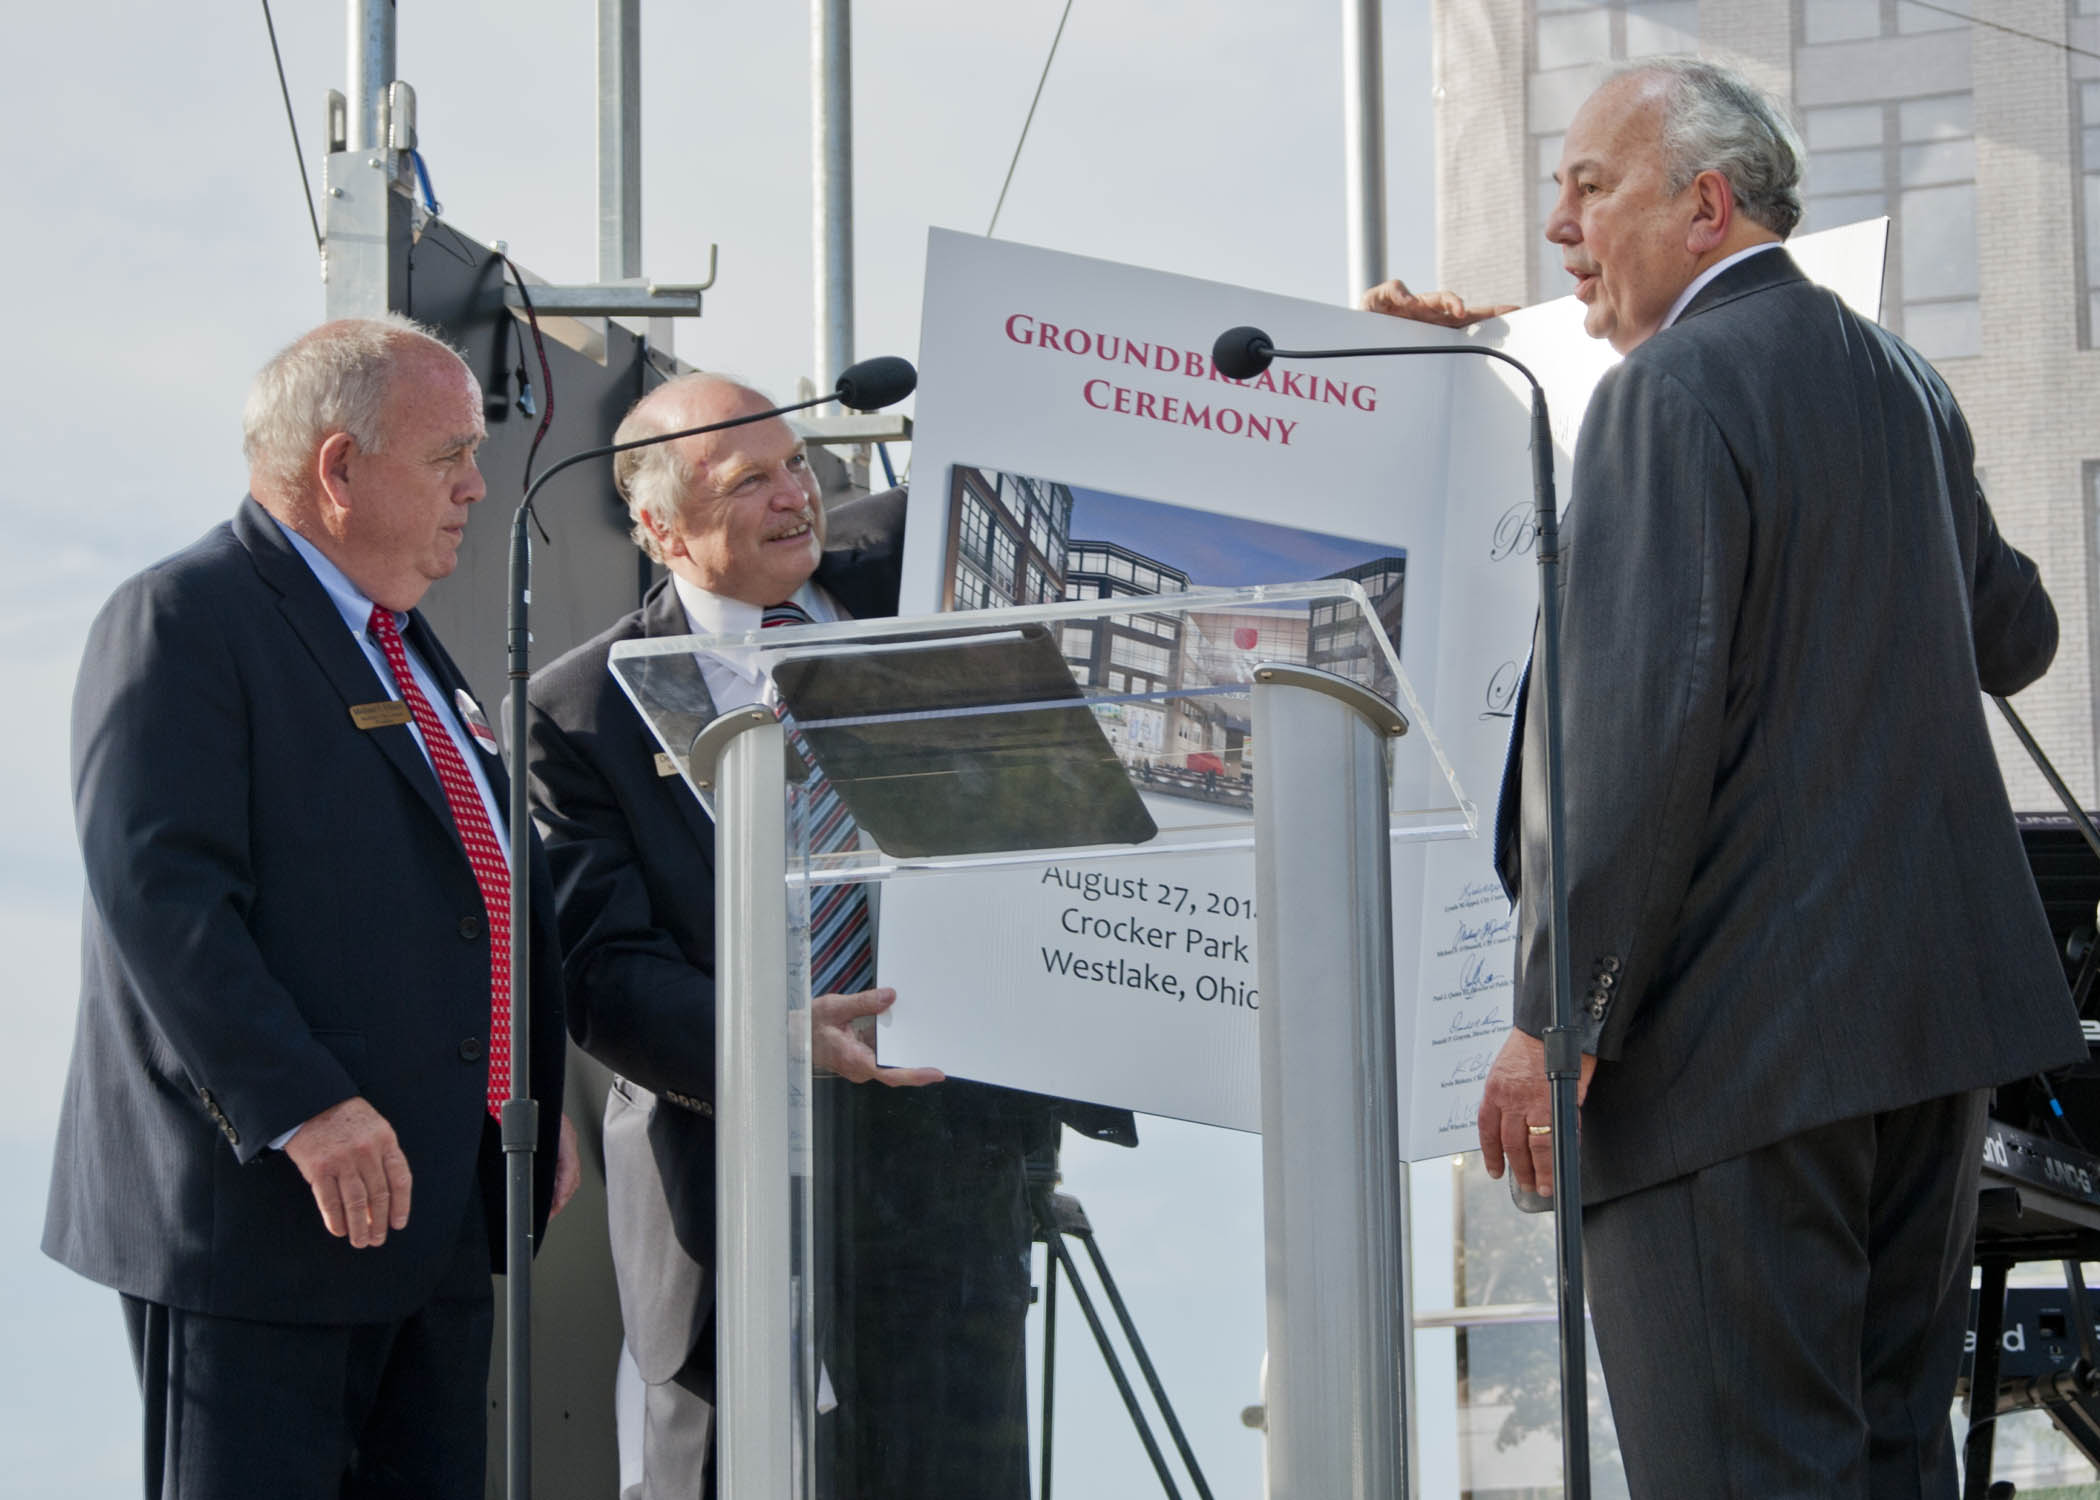 American greetings breaks ground in westlake the villager a highlight of the american greetings creative studios groundbreaking was the presentation of an oversized greeting card to ag chairman morry weiss by m4hsunfo